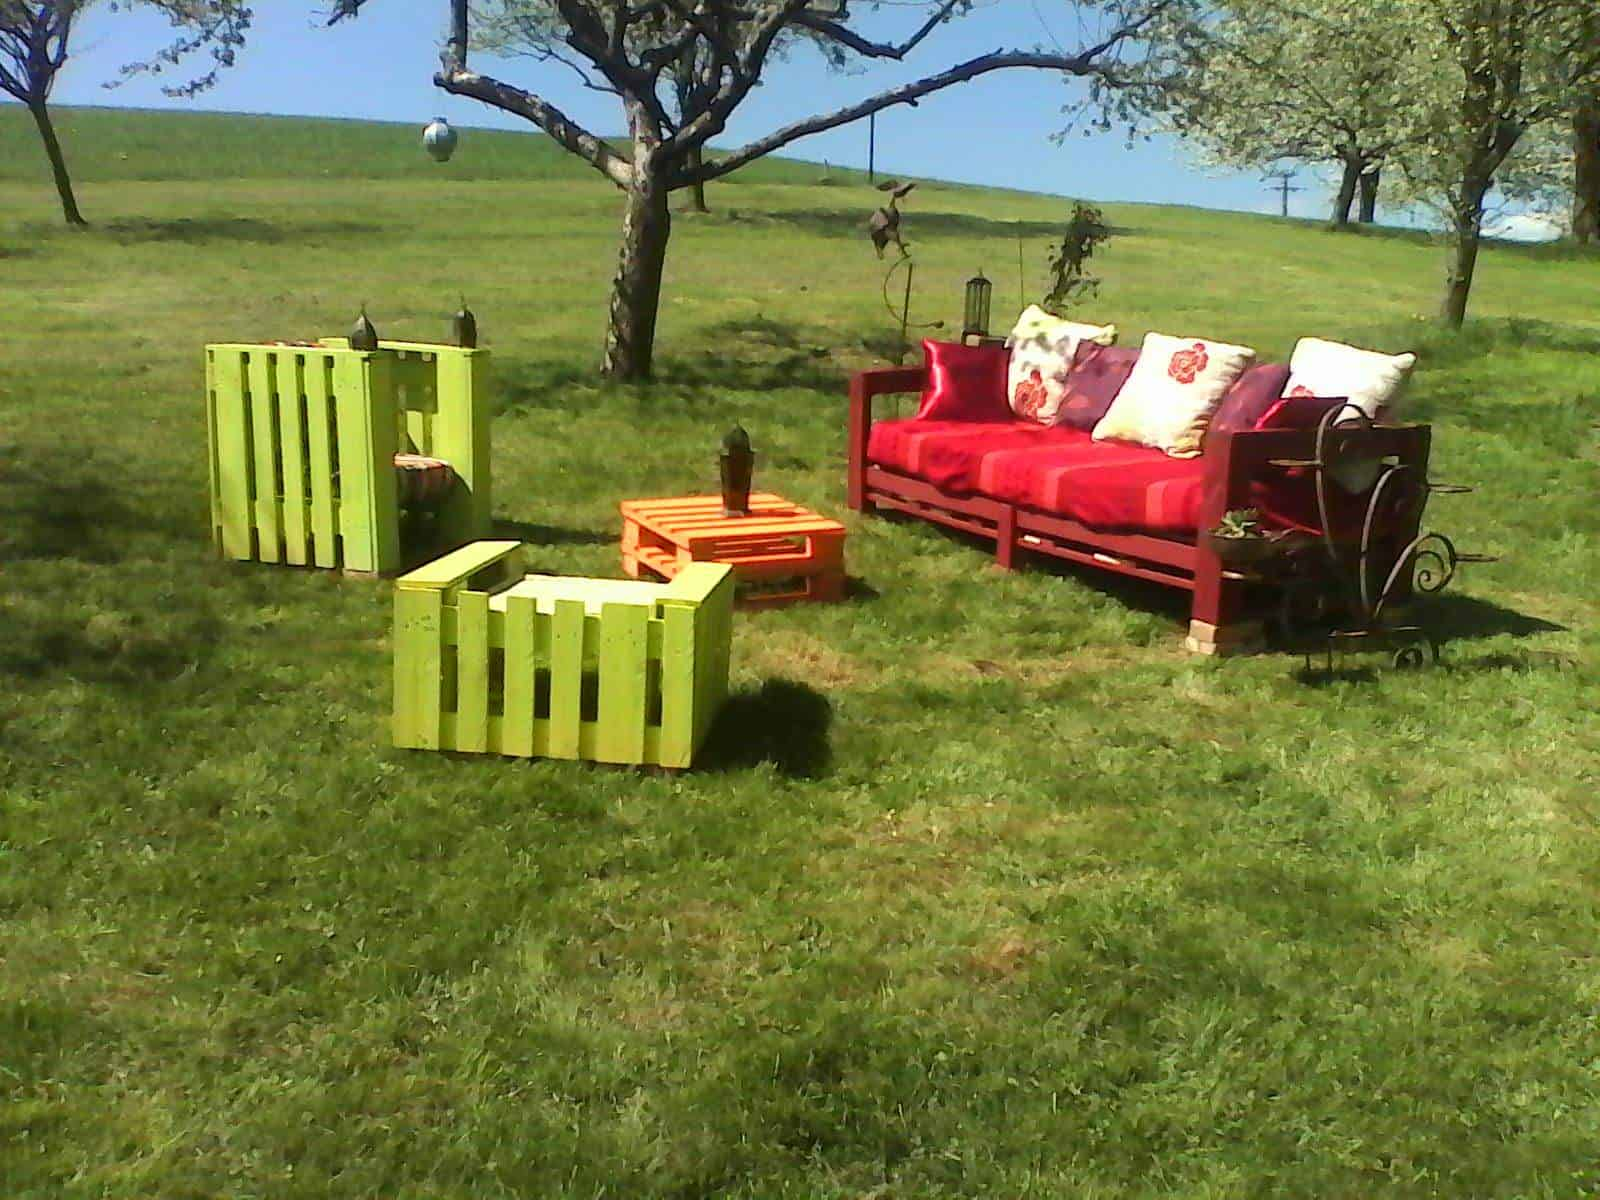 Salon De Jardin En Palettes Colorful Pallets Garden Set 1001 Pallets